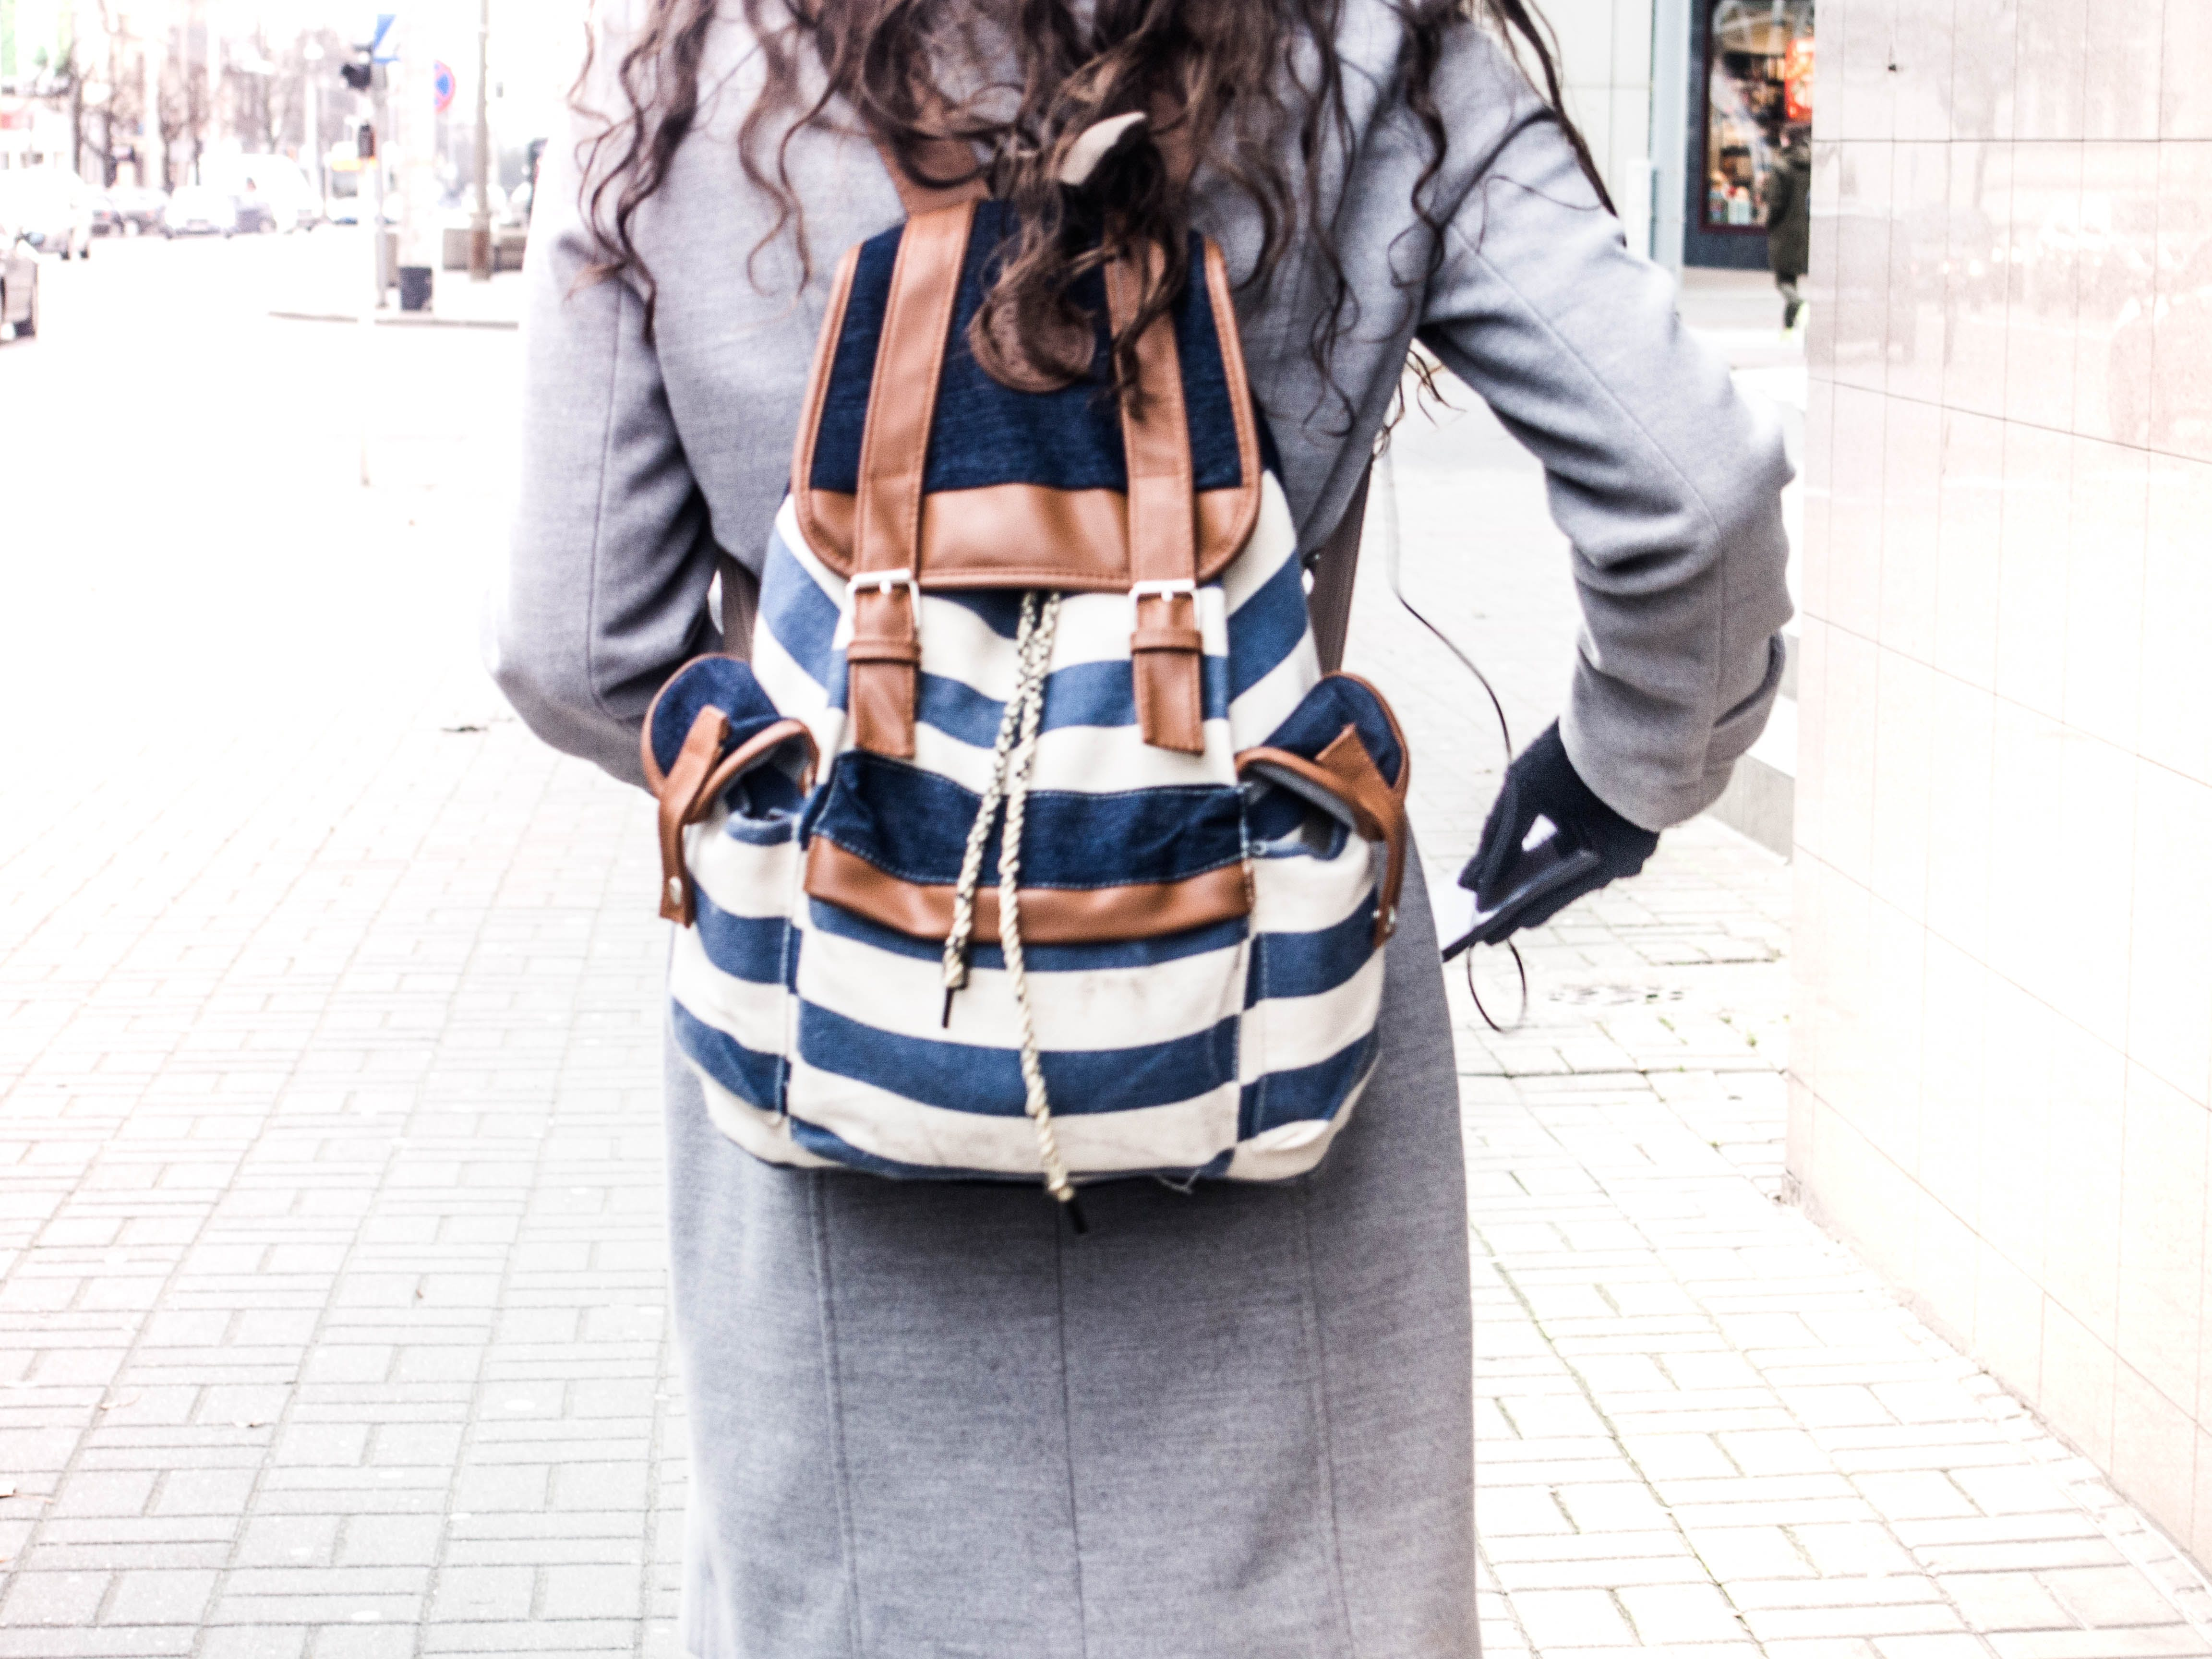 Free stock photo of stripes, backpack